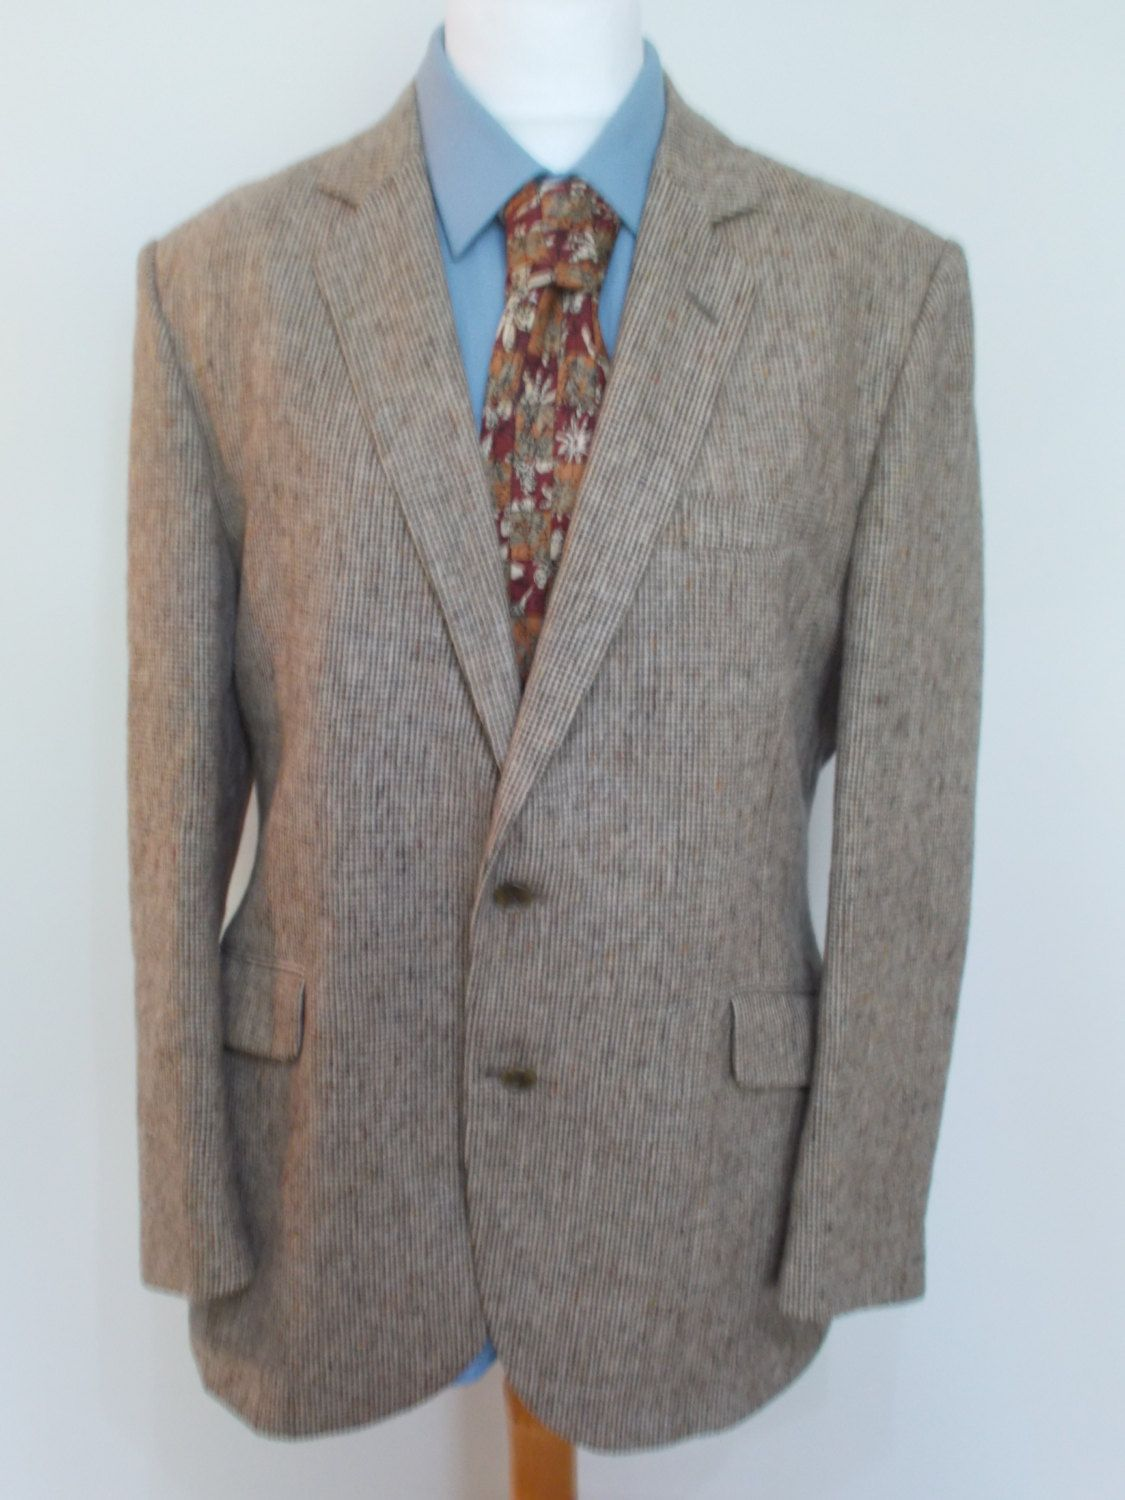 Vintage mens Navy Blazer jacket by Kenzo wool with logo buttons 40